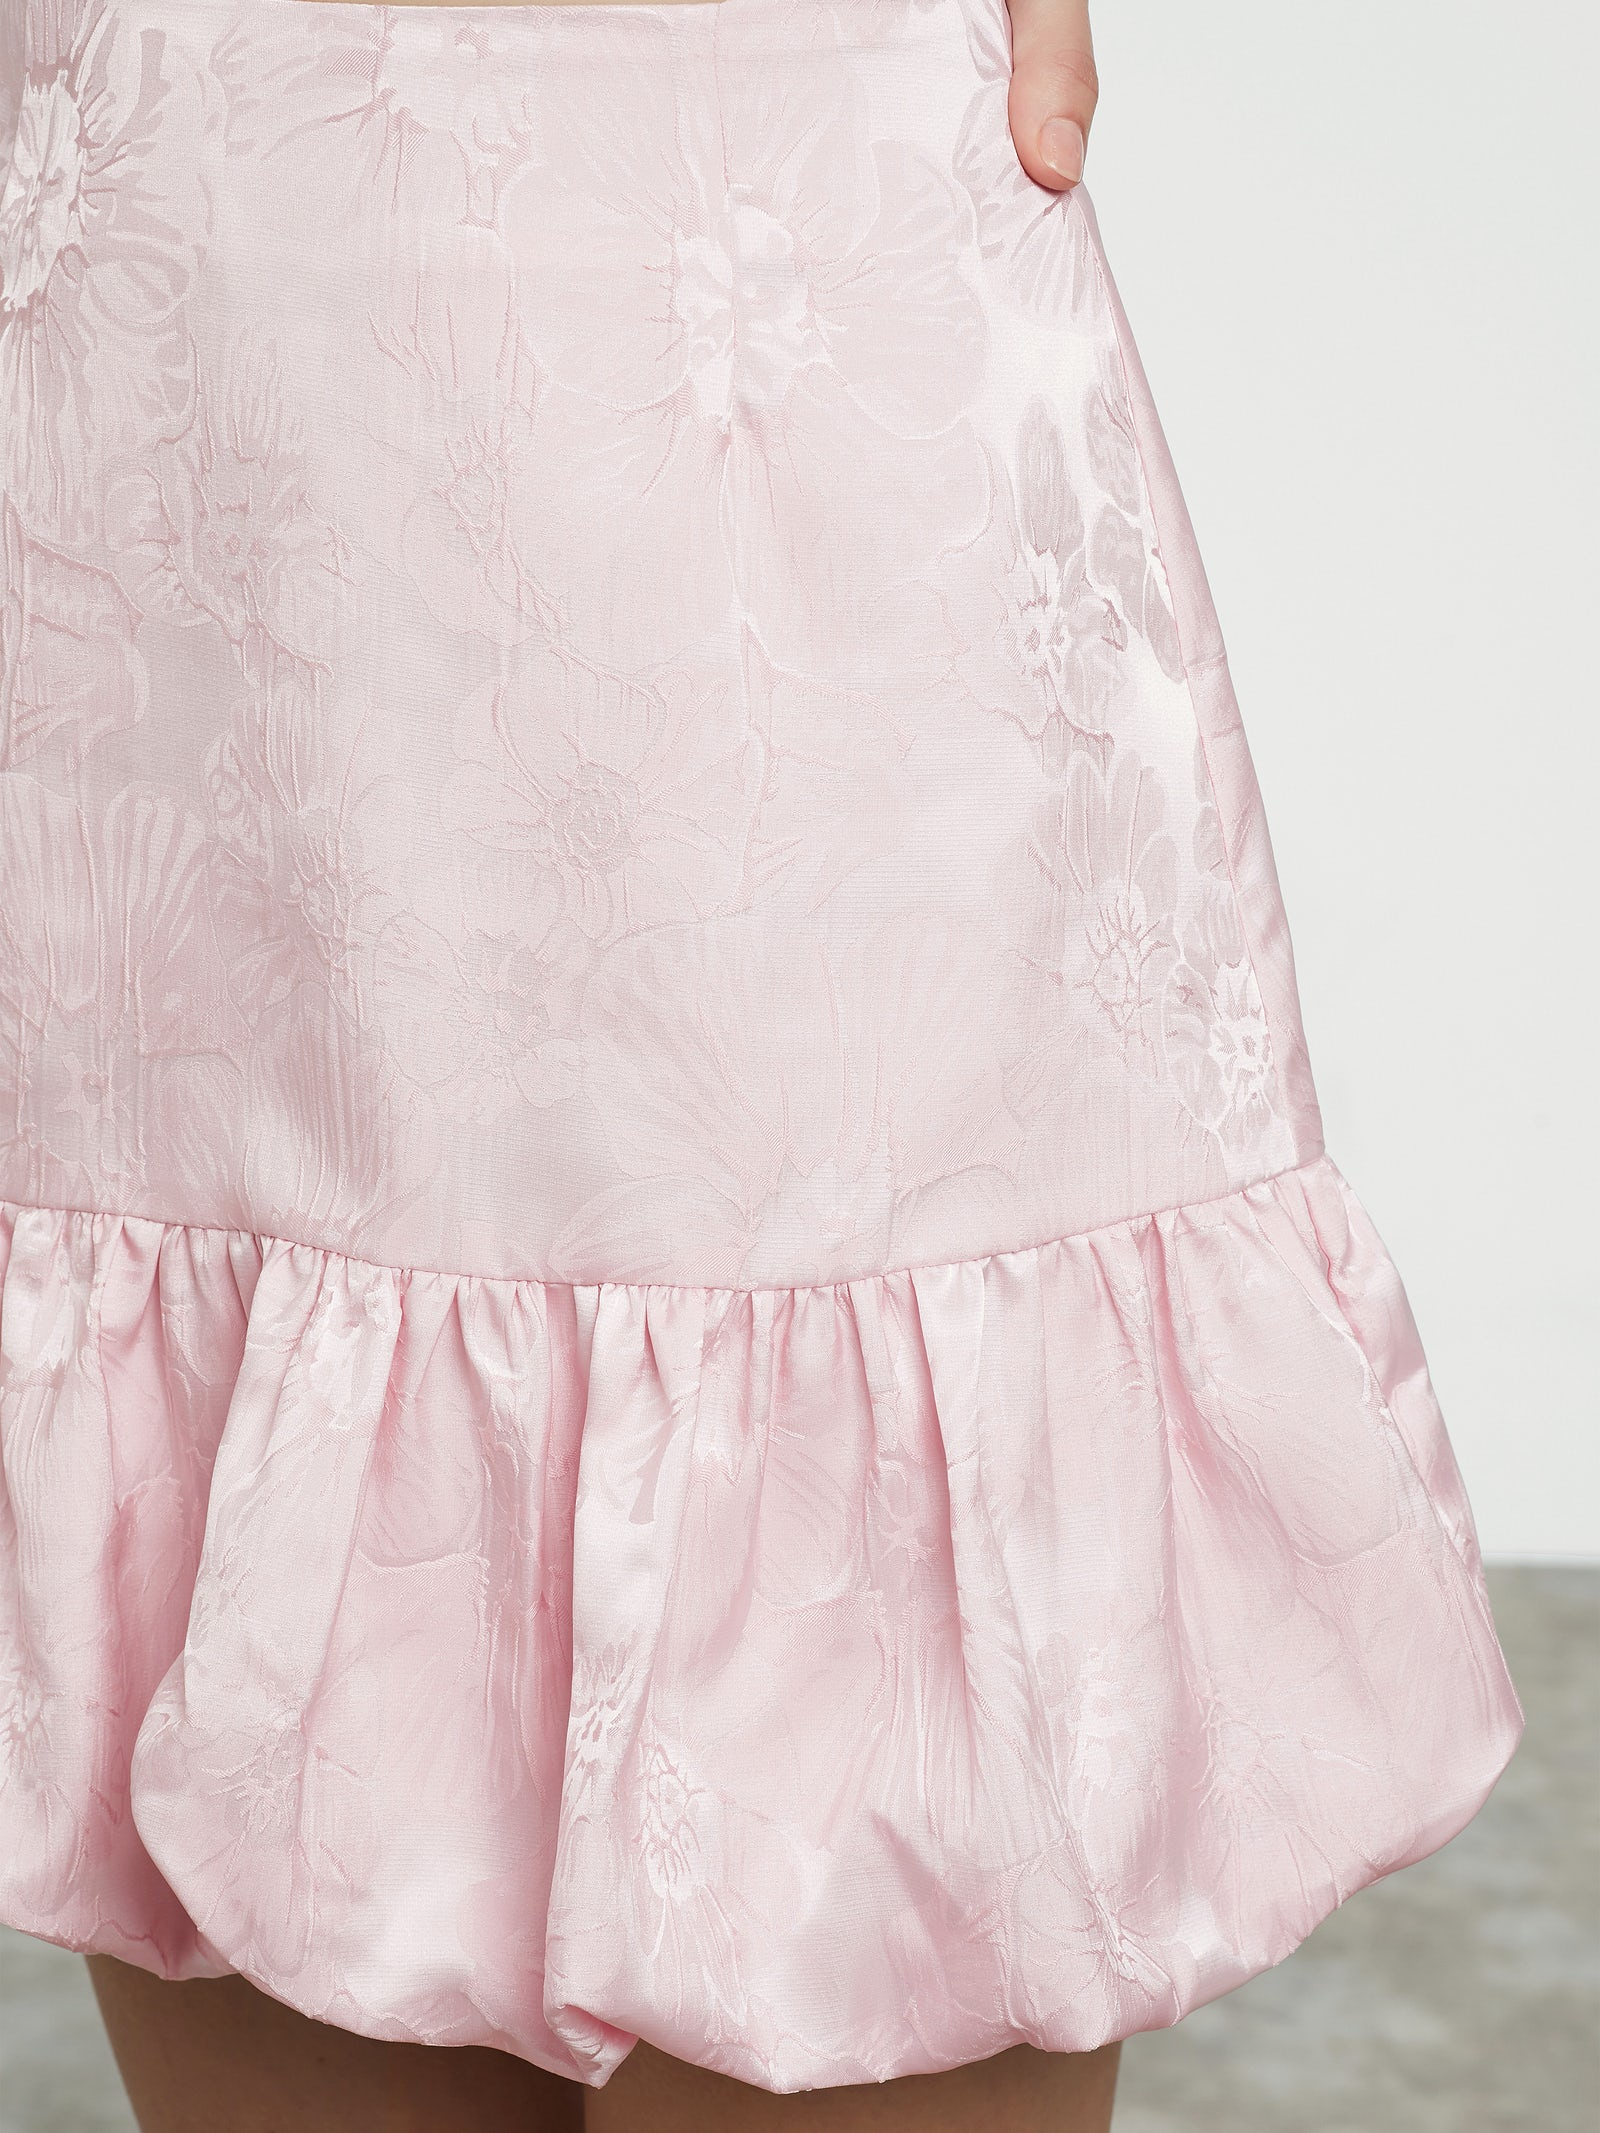 Pink Flashy satin skirt | Women | Skirts at